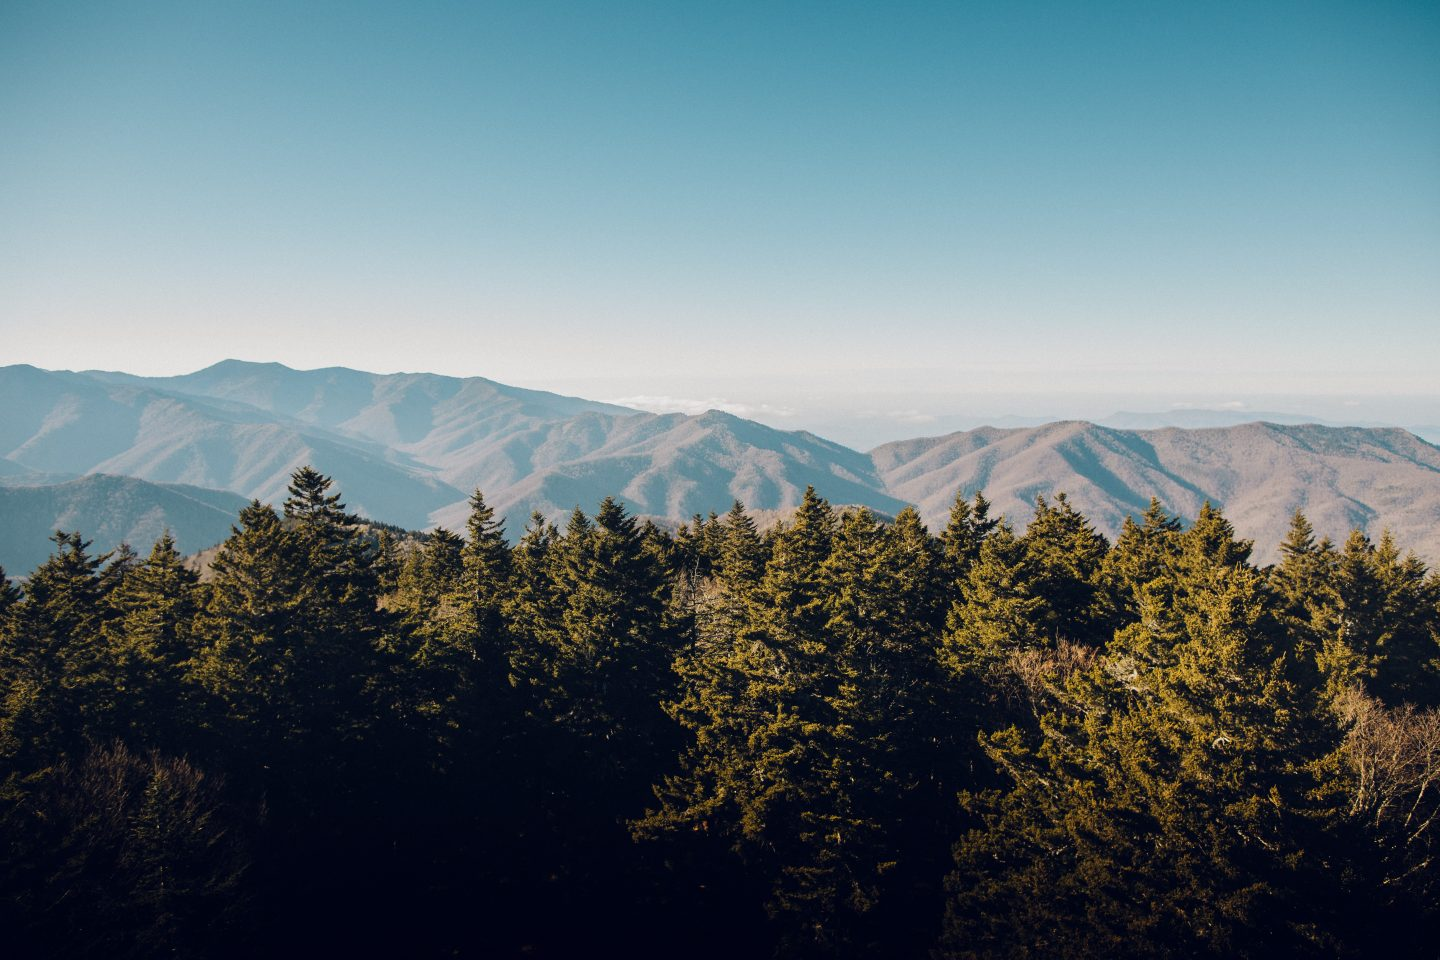 trees, mountains in background, nature shot